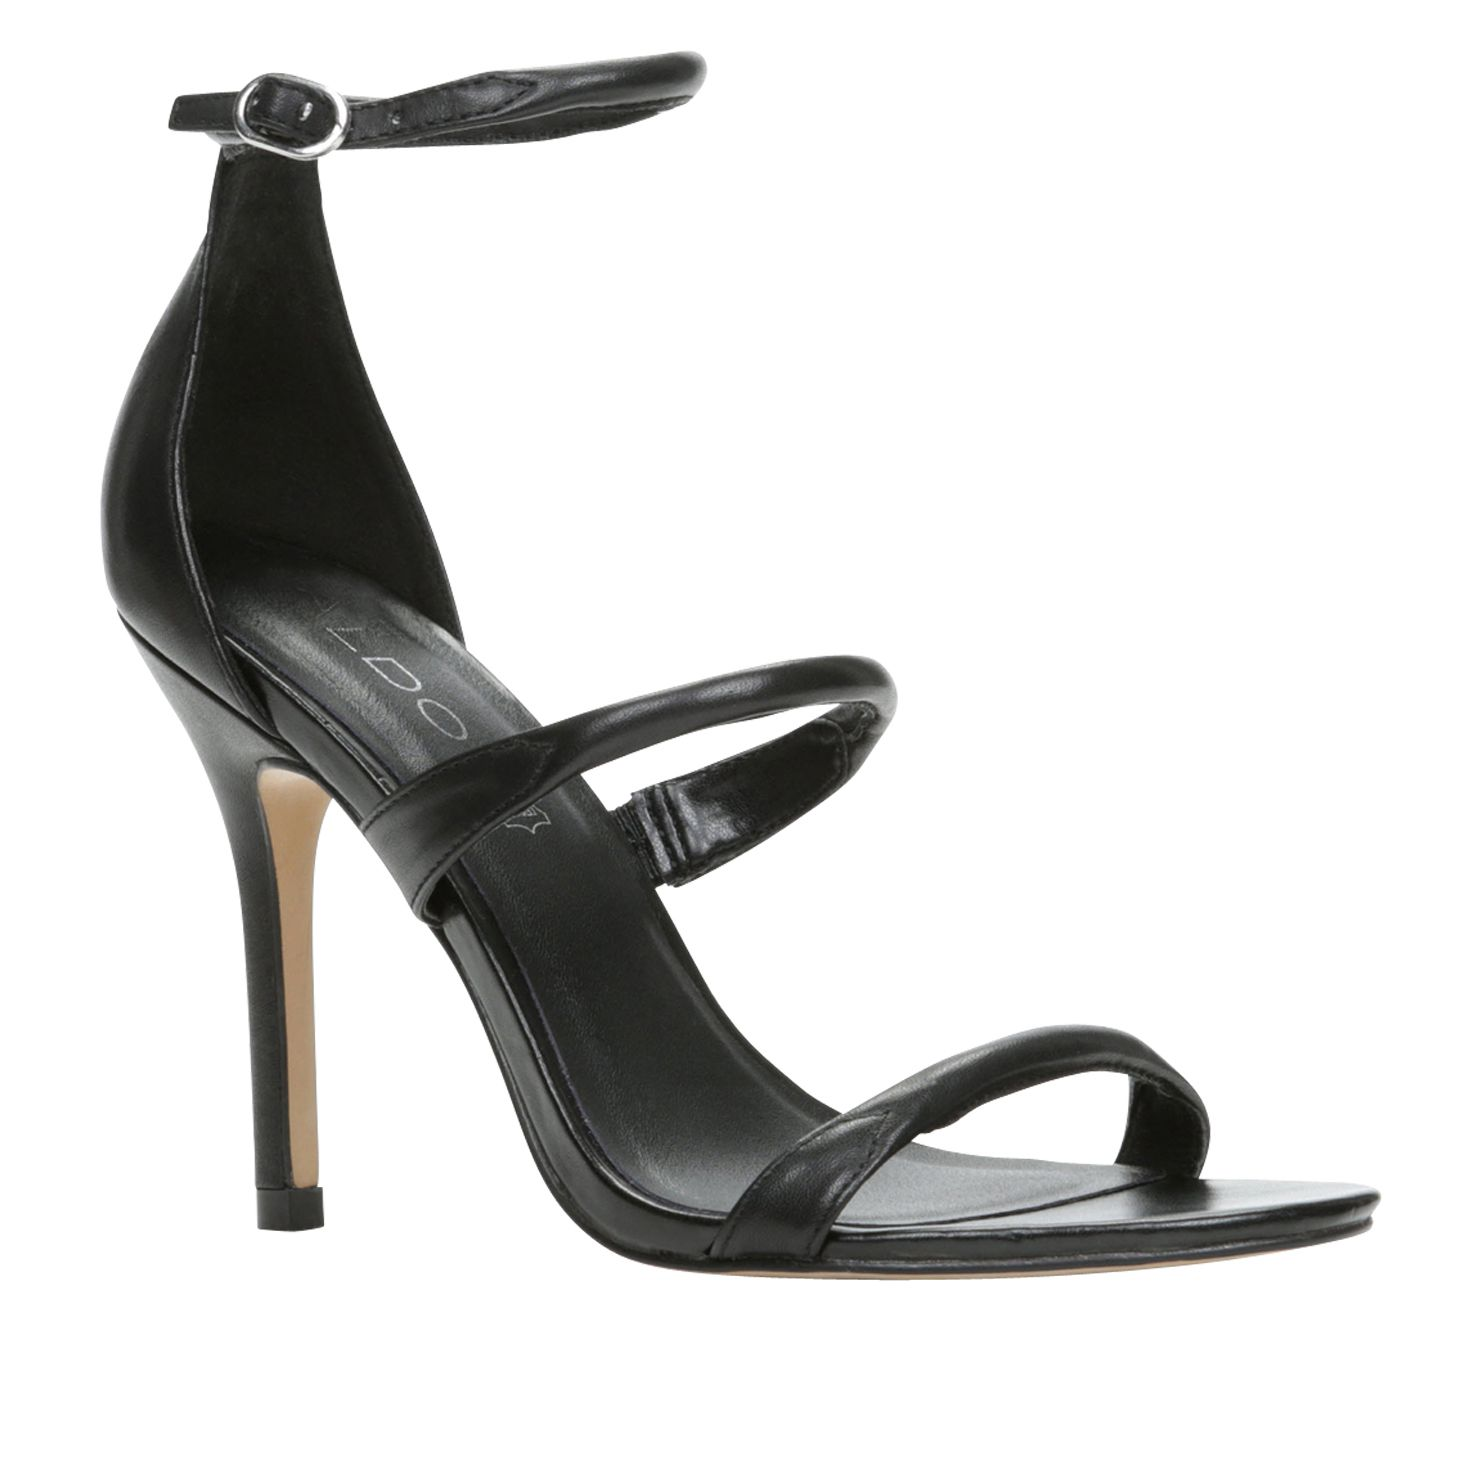 Margetts strap high heel sandals